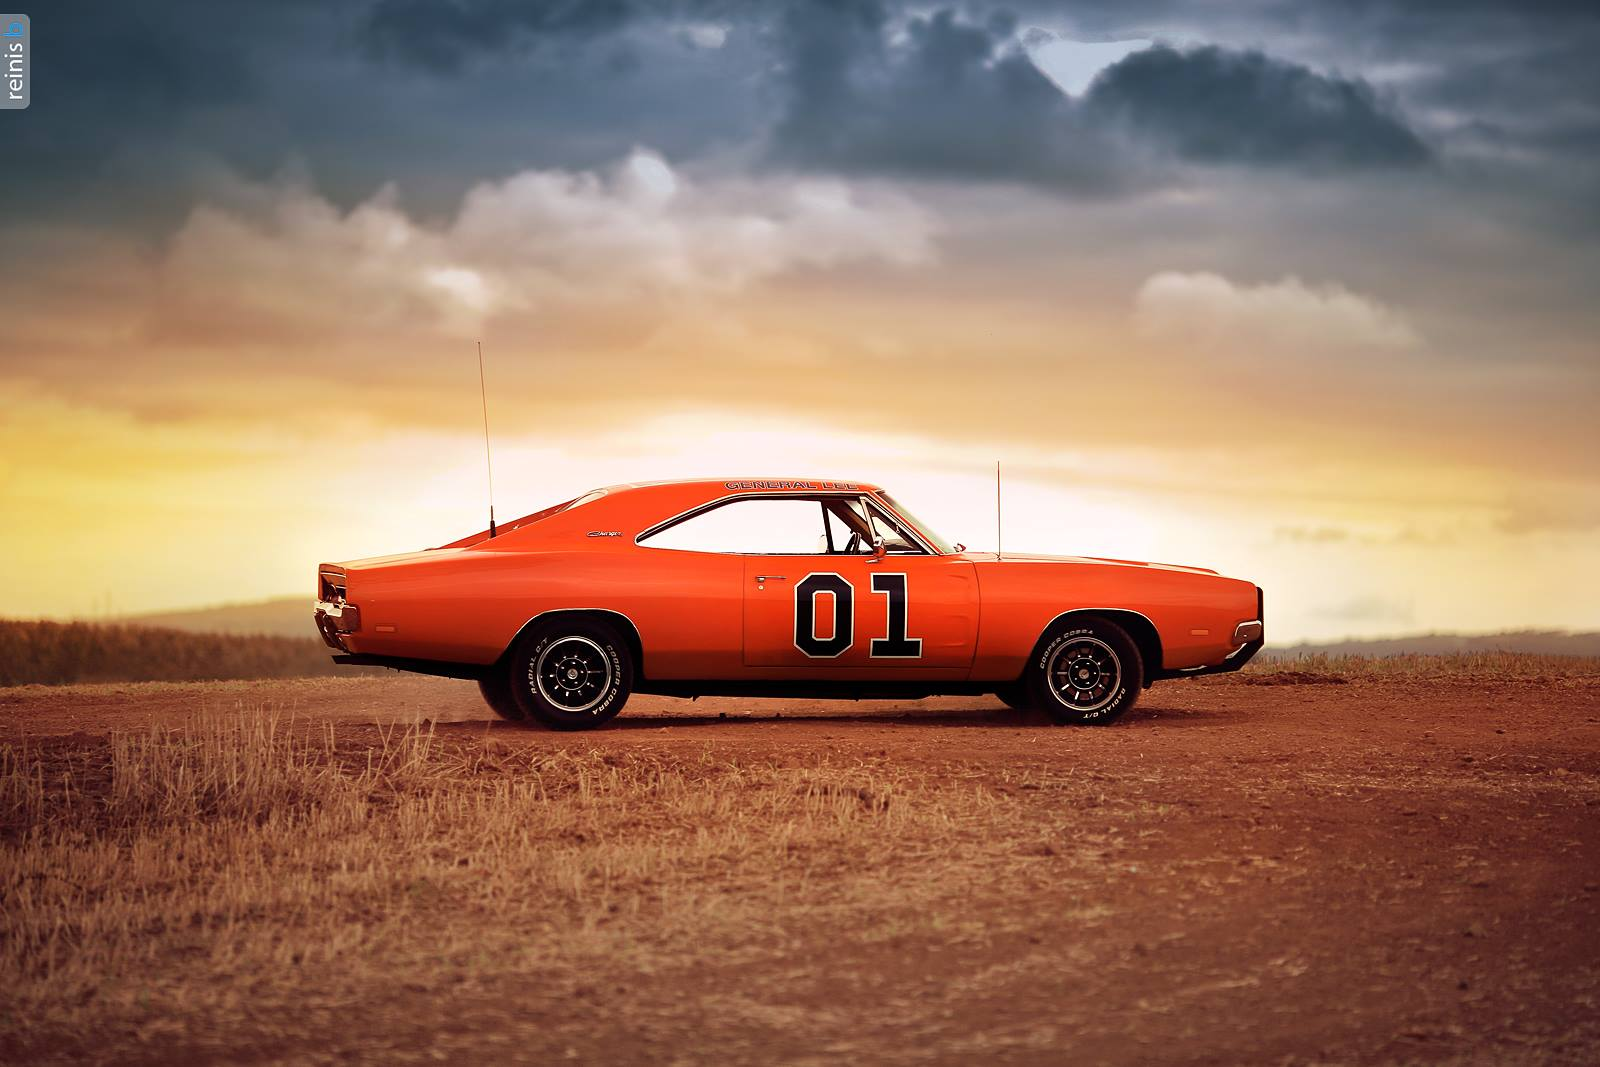 General Lee Dodge Charger R T General Lee Car Dodge 2042768 Hd Wallpaper Backgrounds Download